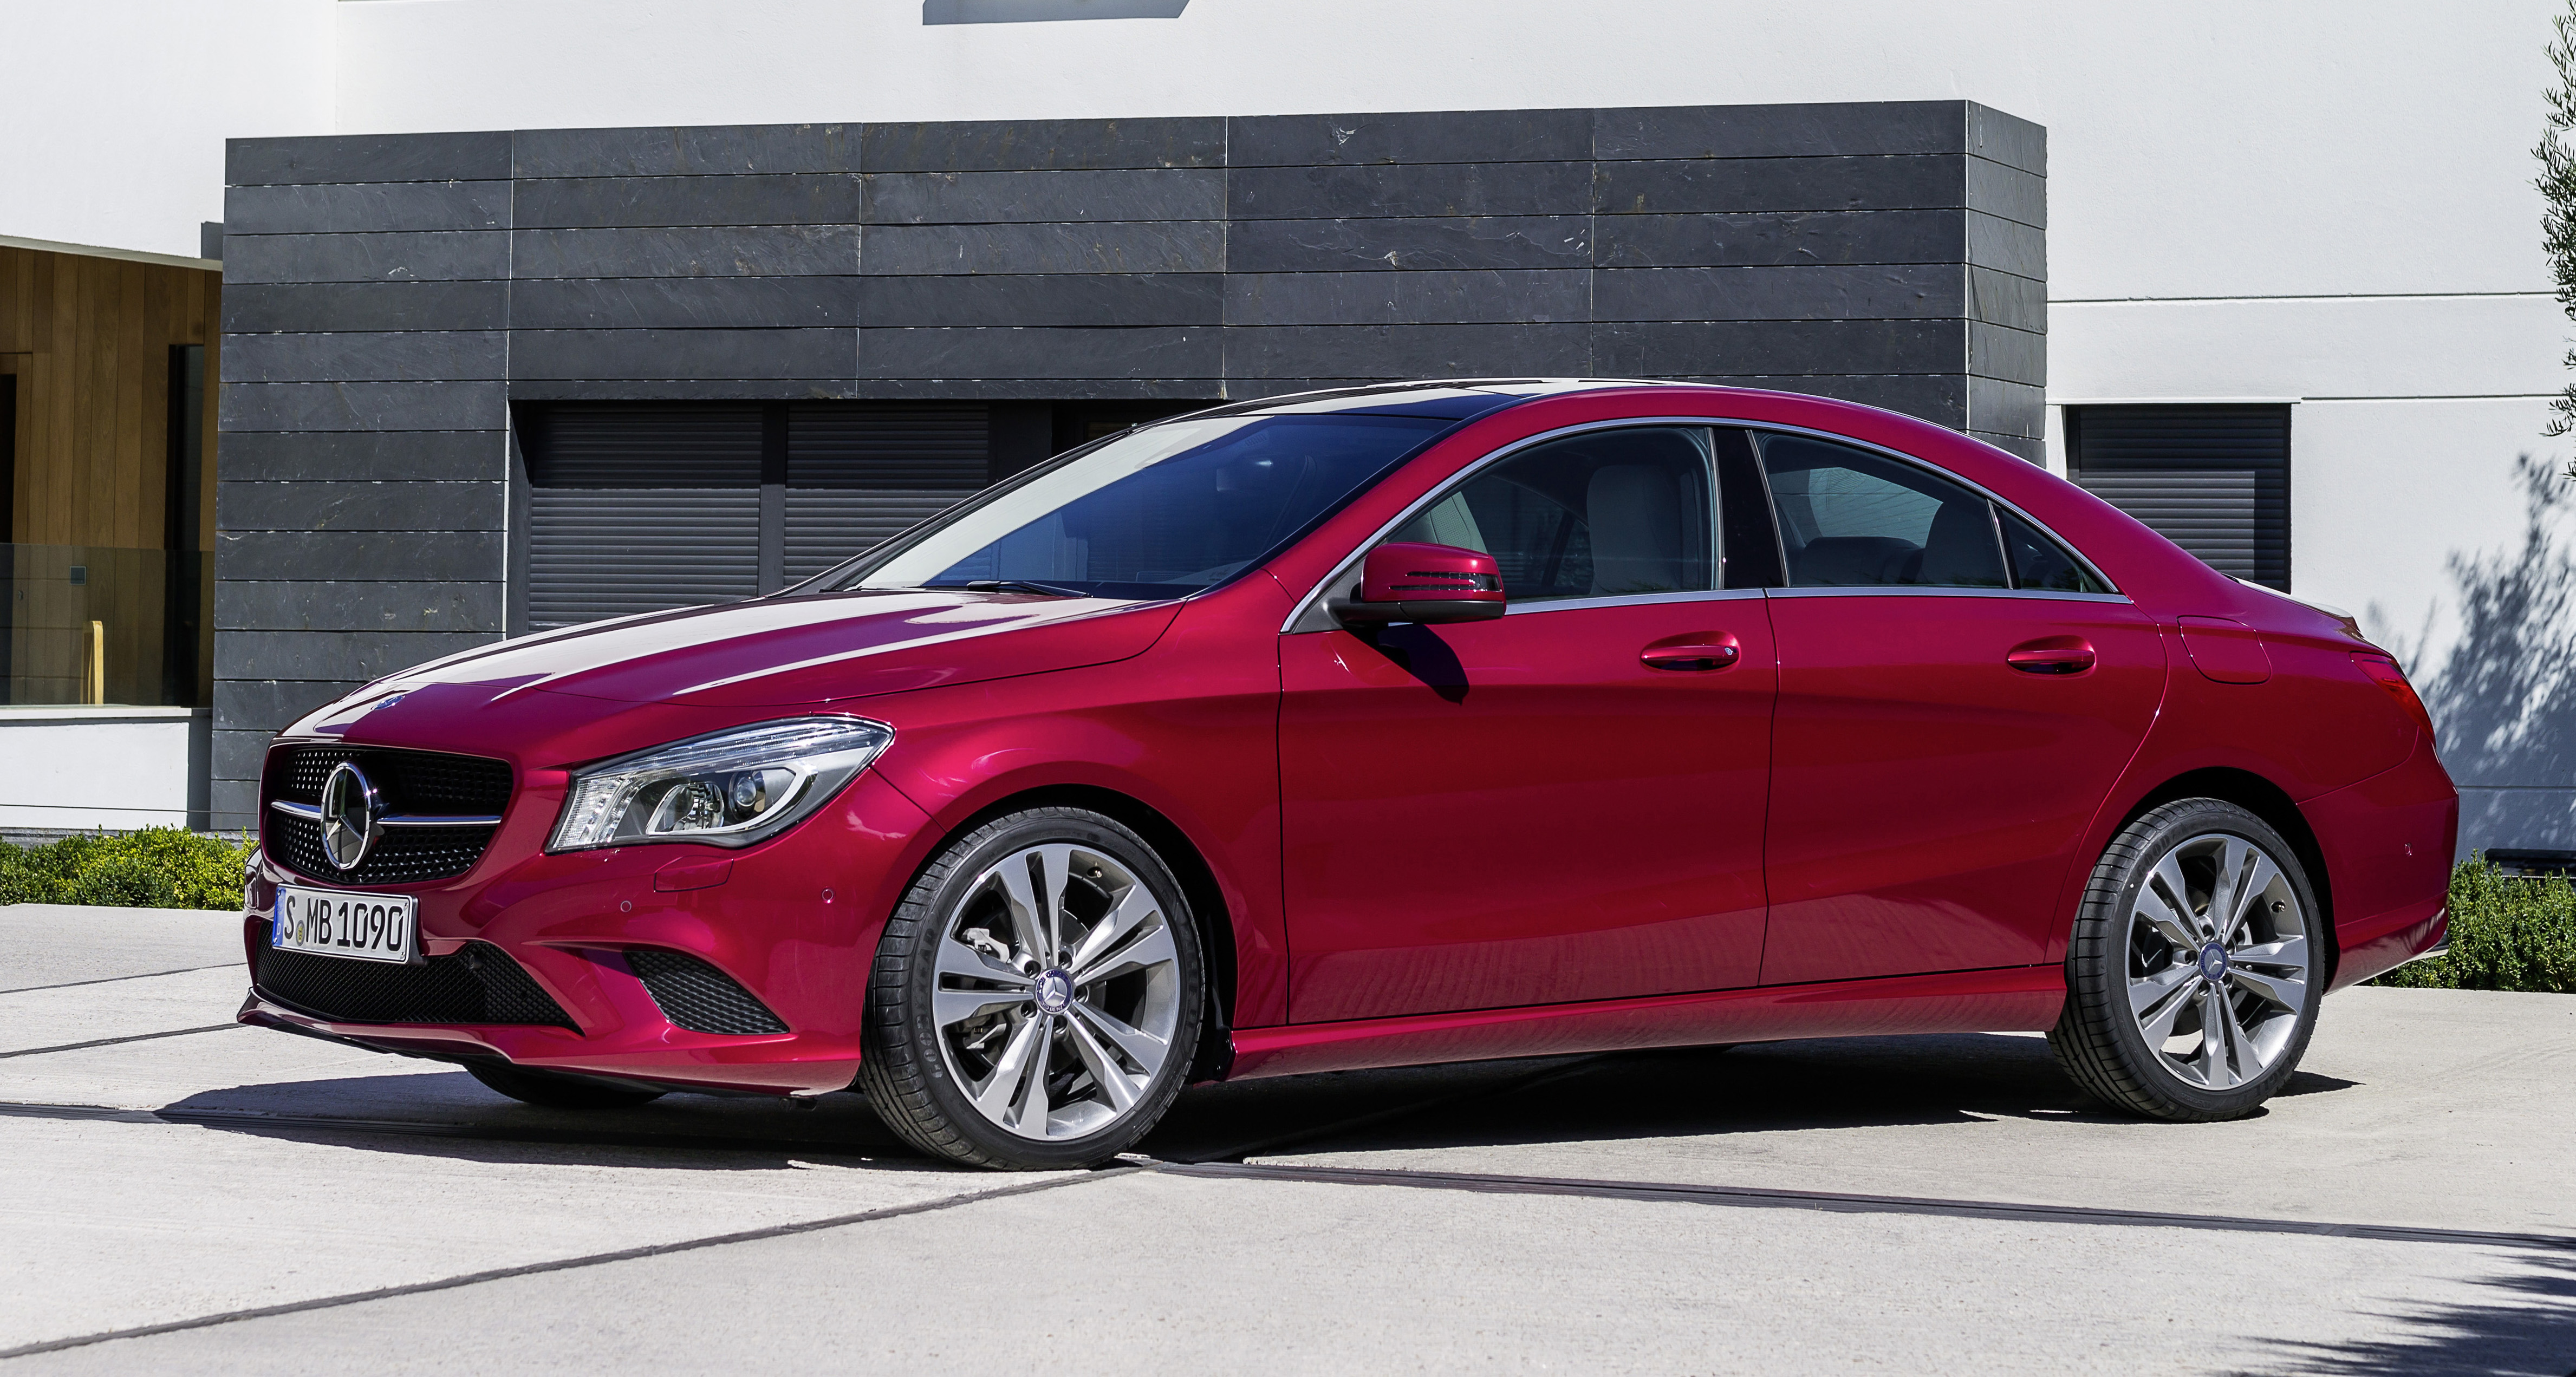 New mercedes benz cla class makes its debut image 149618 for New mercedes benz cla